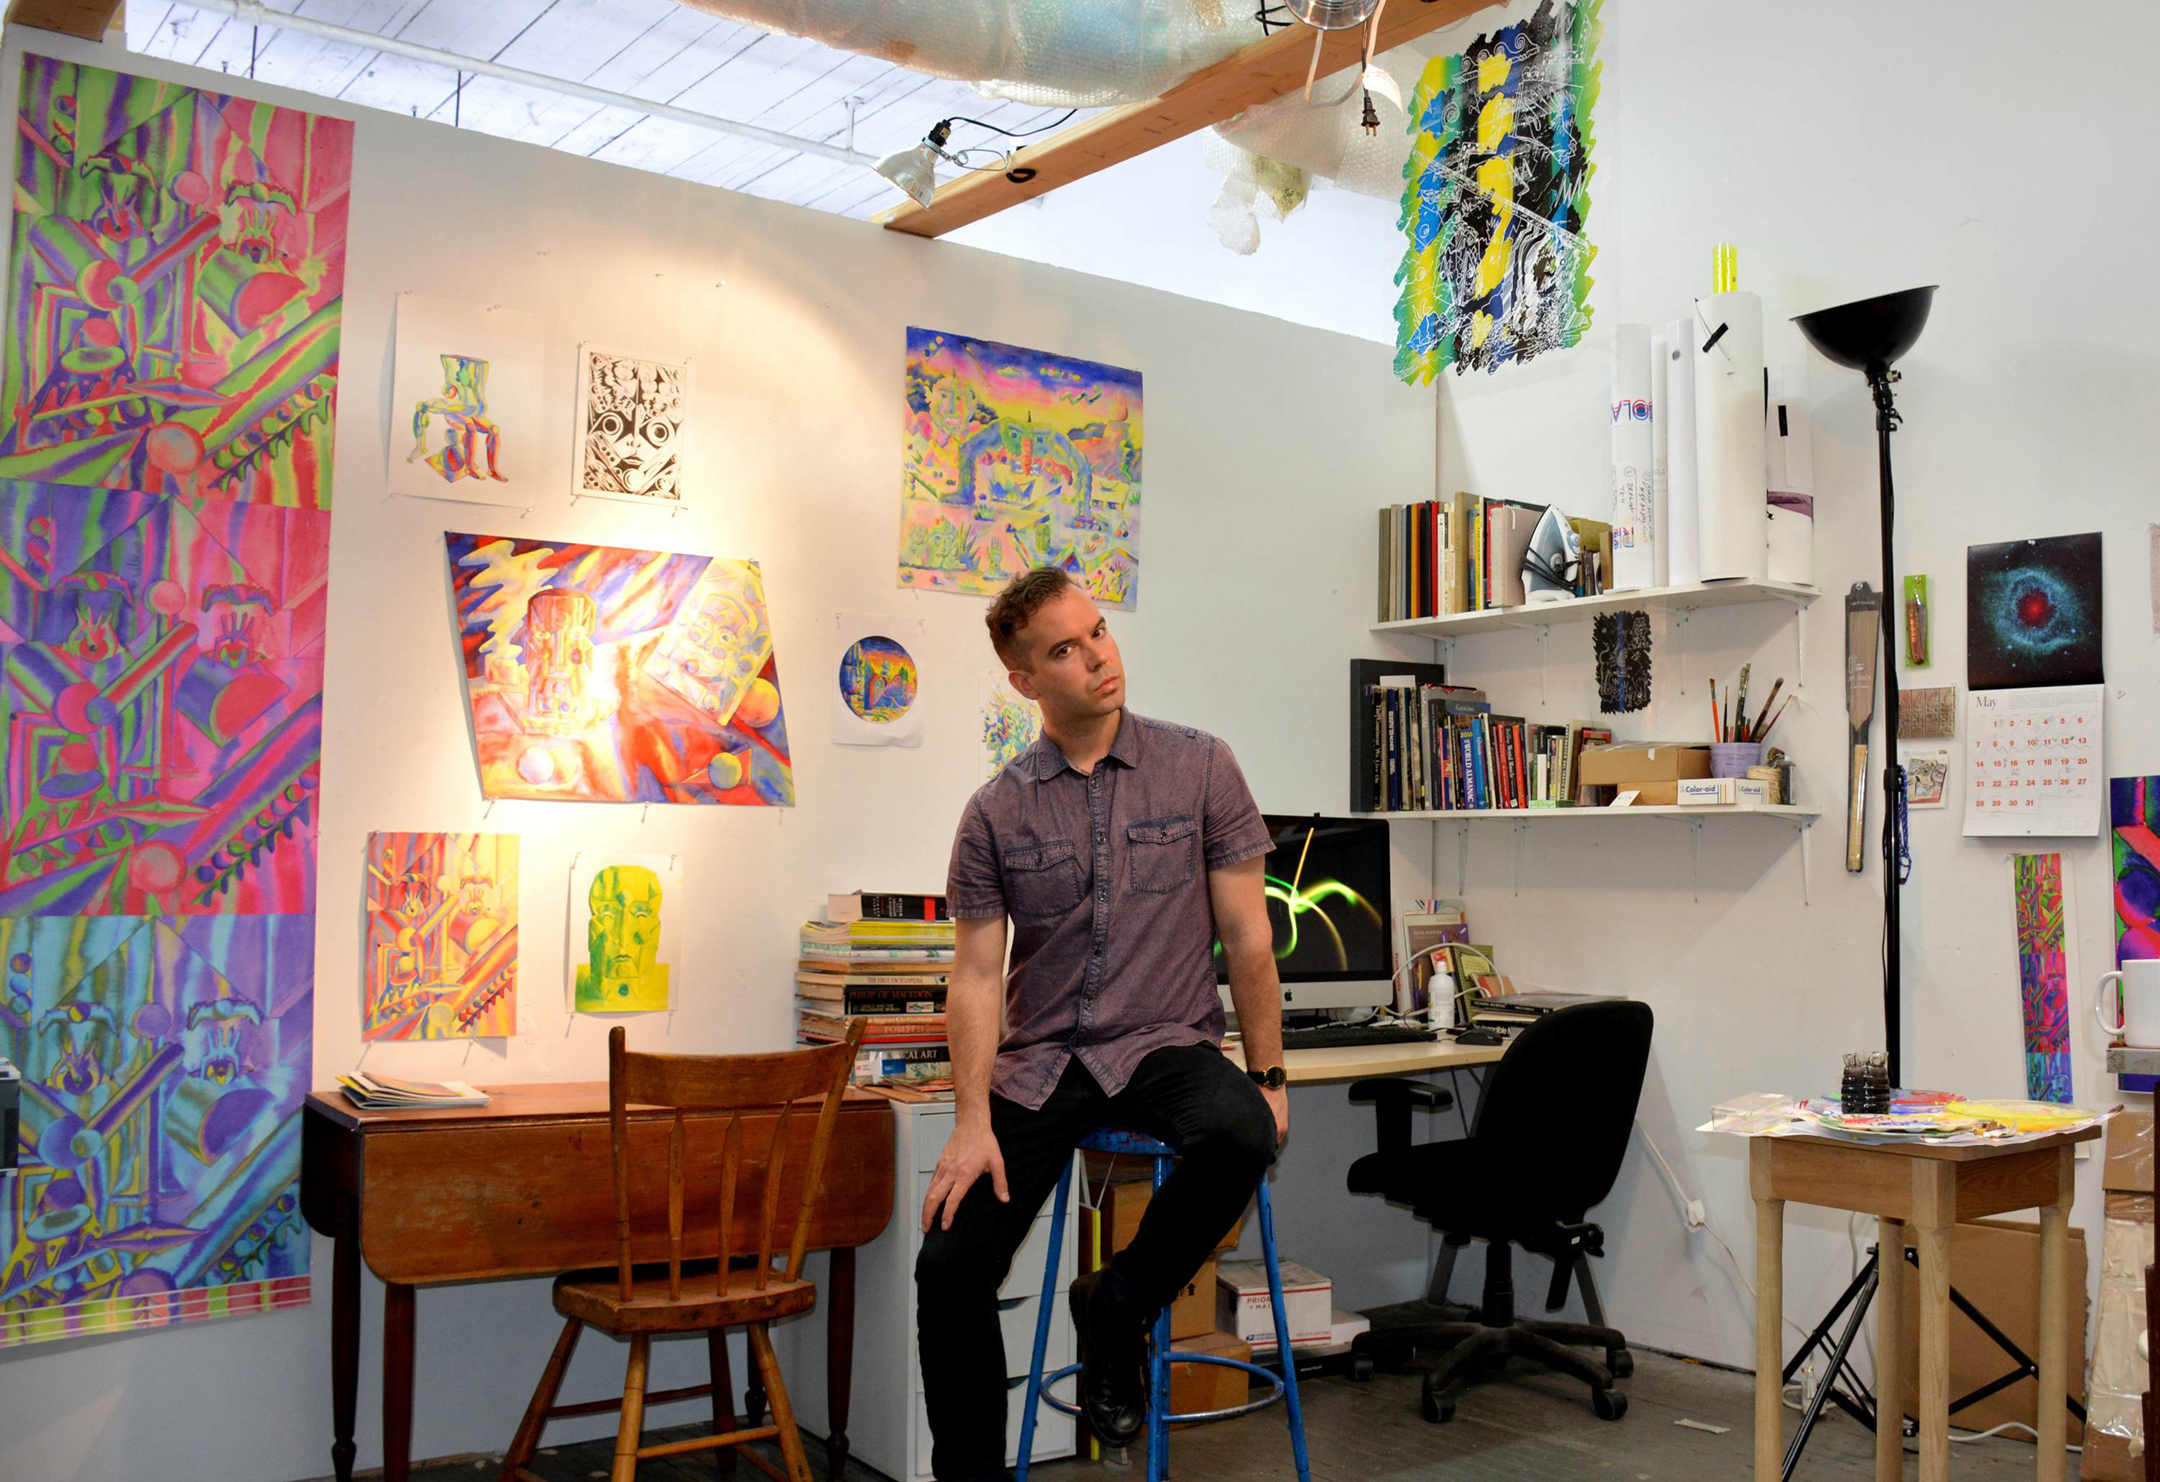 "<p ""="""">The artist Pan Terzis sits in his art studio, surrounded by paintings and prints."